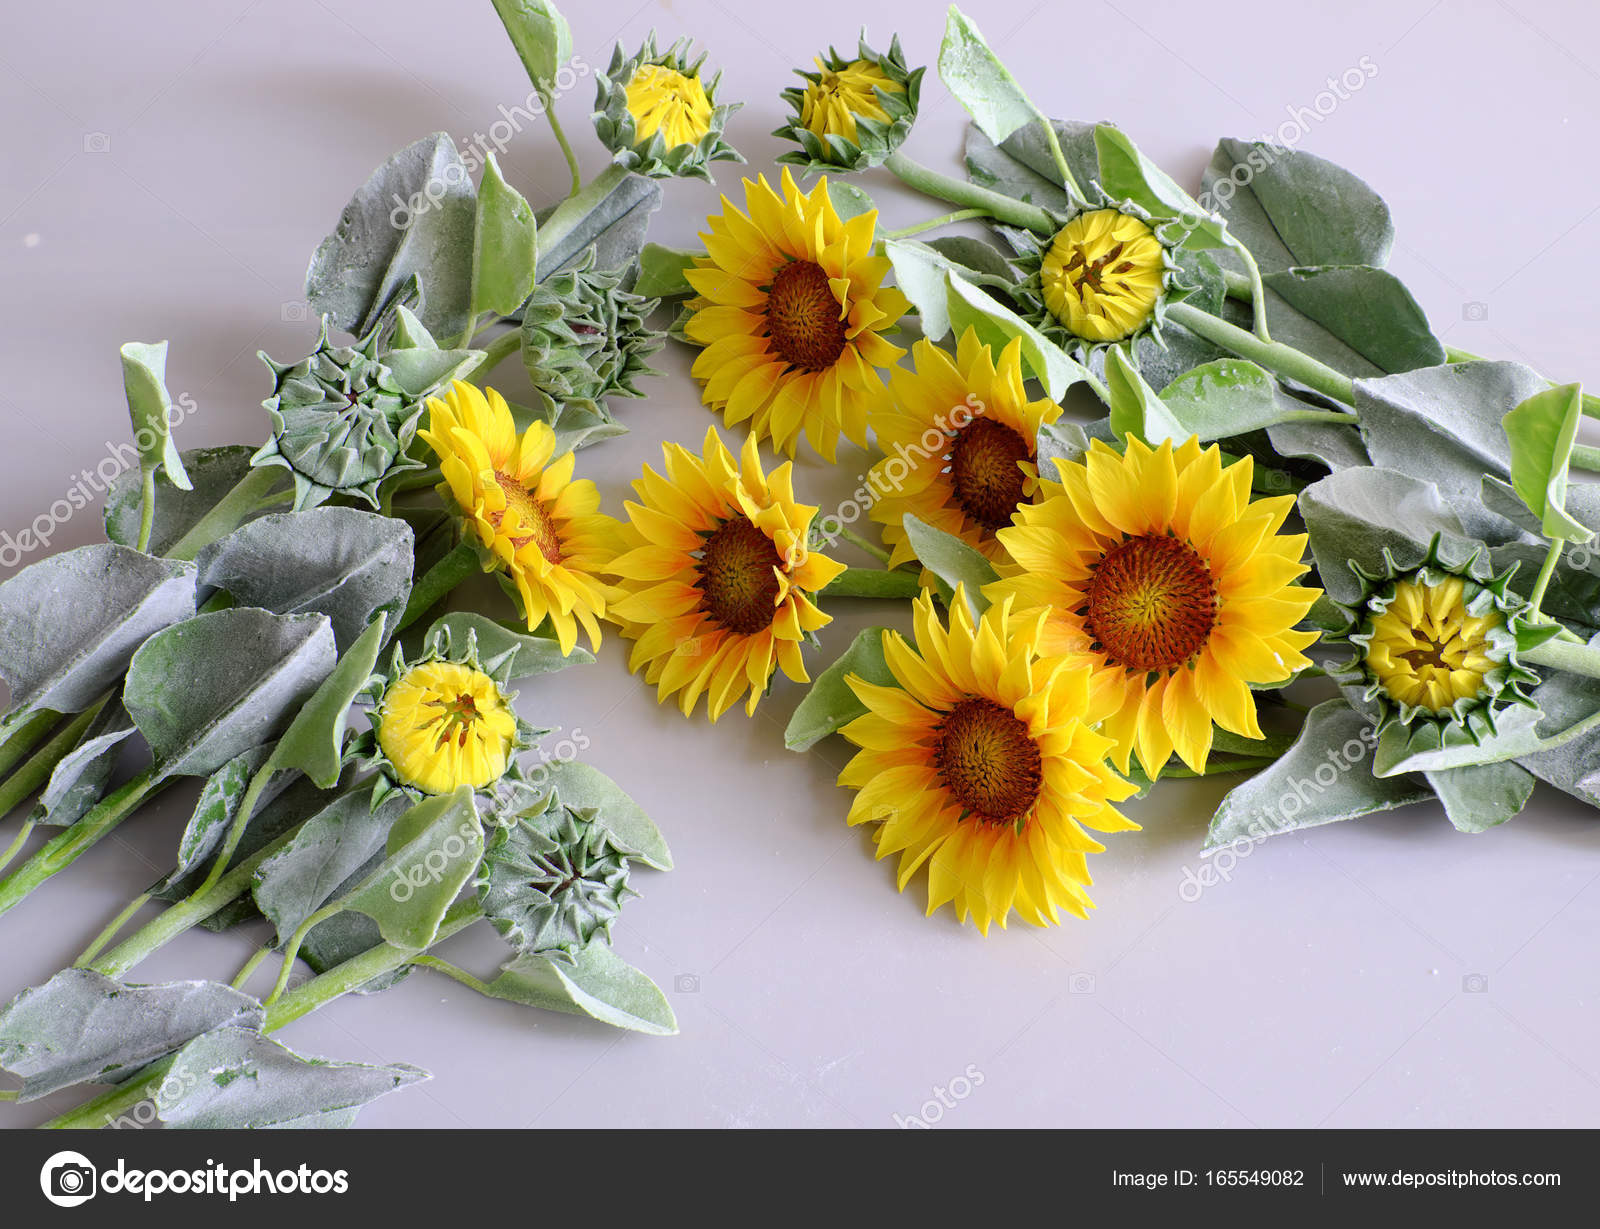 Clay flower sunflower bouquet stock photo xuanhuongho 165549082 amazing clay flower handmade product for home decor sunflower bouquet bloom in yellow and green leaf on white background beautiful artificial flower izmirmasajfo Images